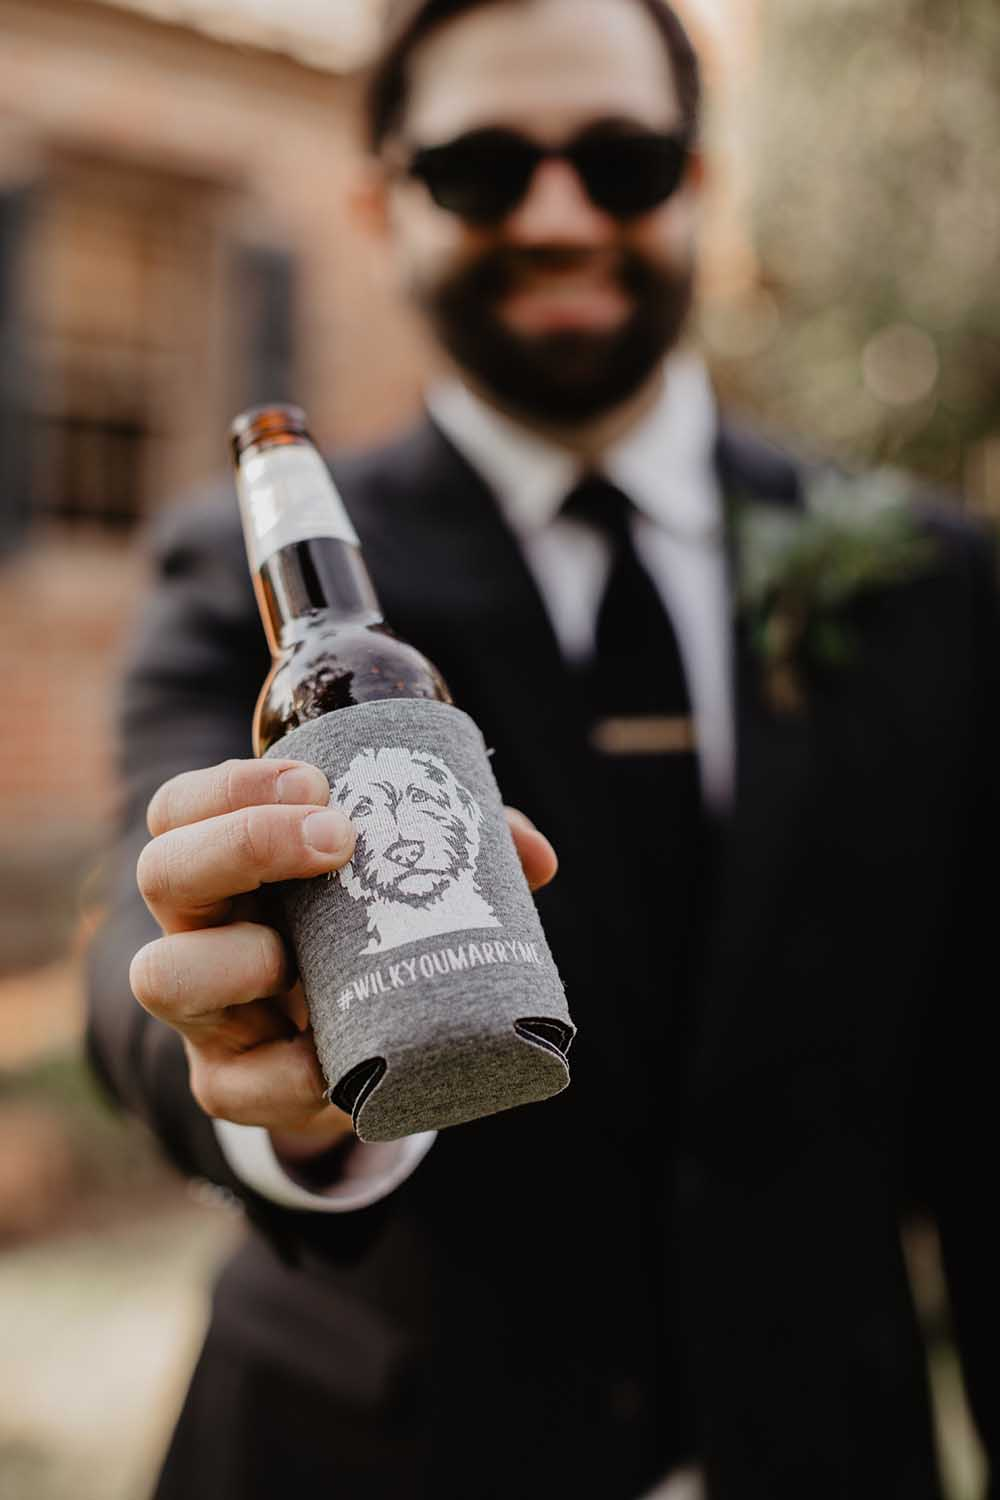 Custom Wedding Koozie with Dog's Face | photo by Emily Green Photography | featured on I Do Y'all